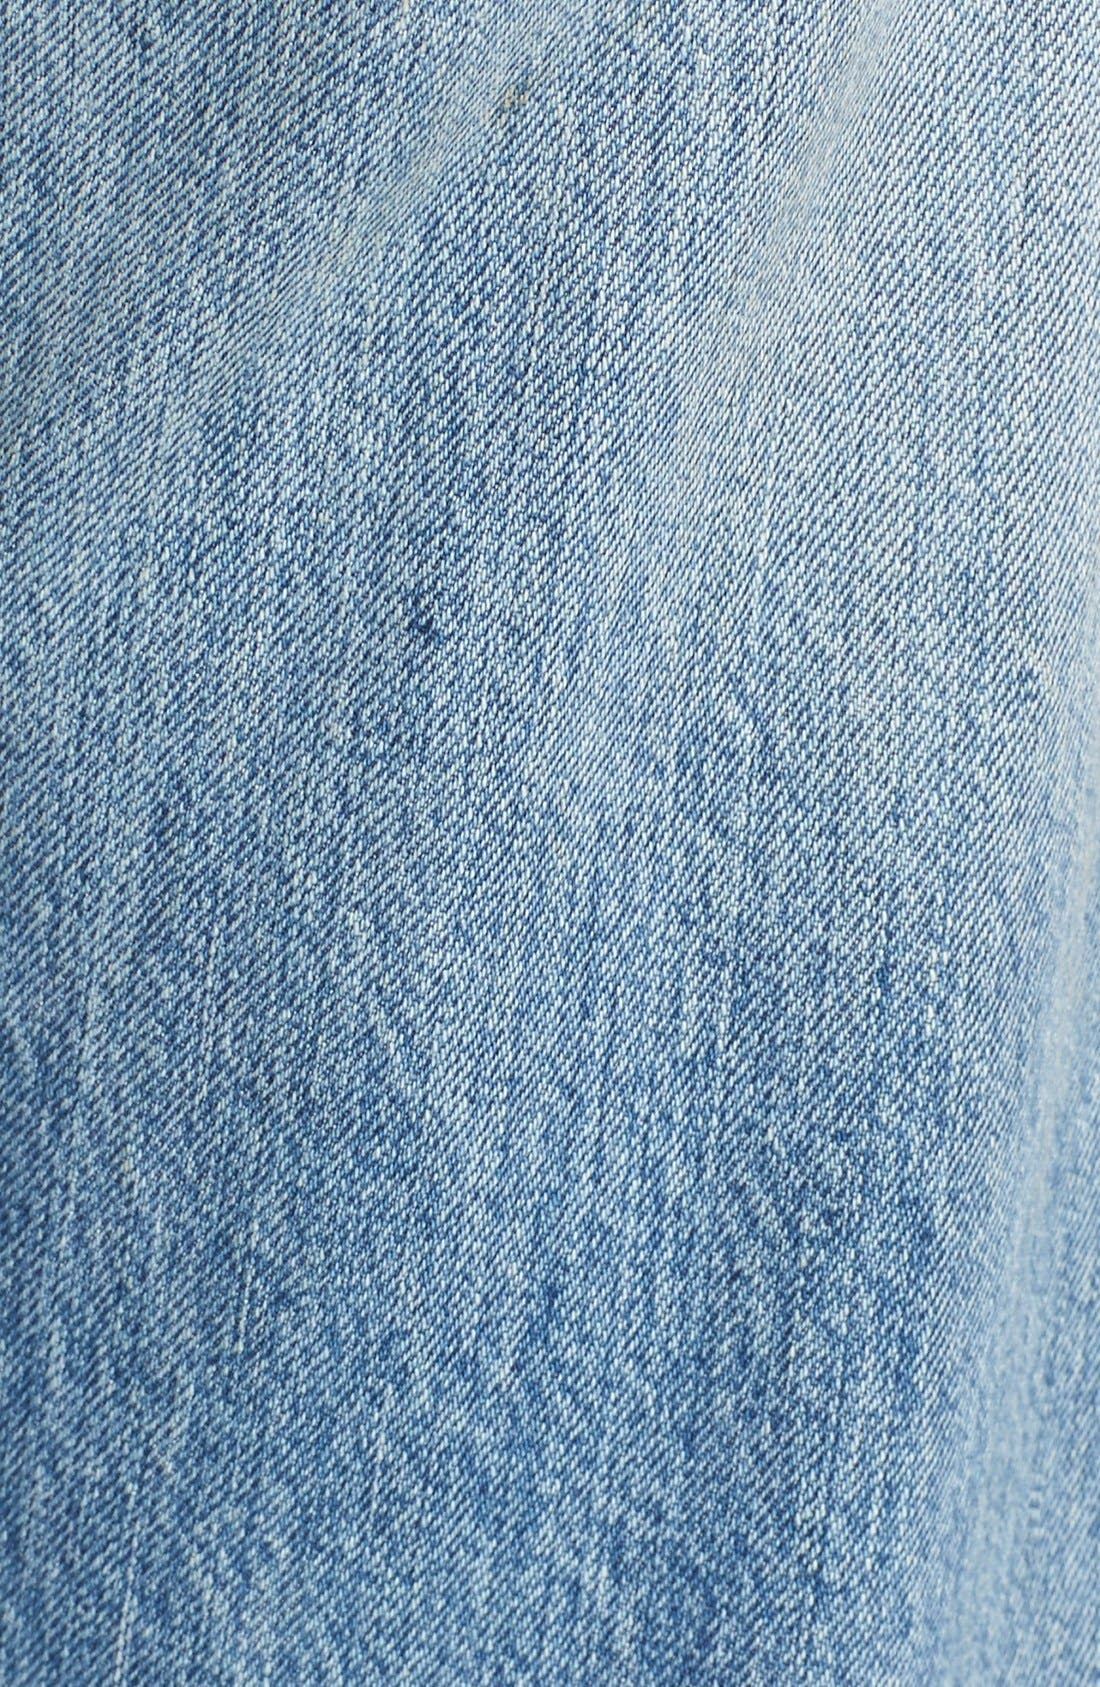 Alternate Image 5  - Levi's® '501 CT' Crop Distressed Boyfriend Jeans (Time Gone By)